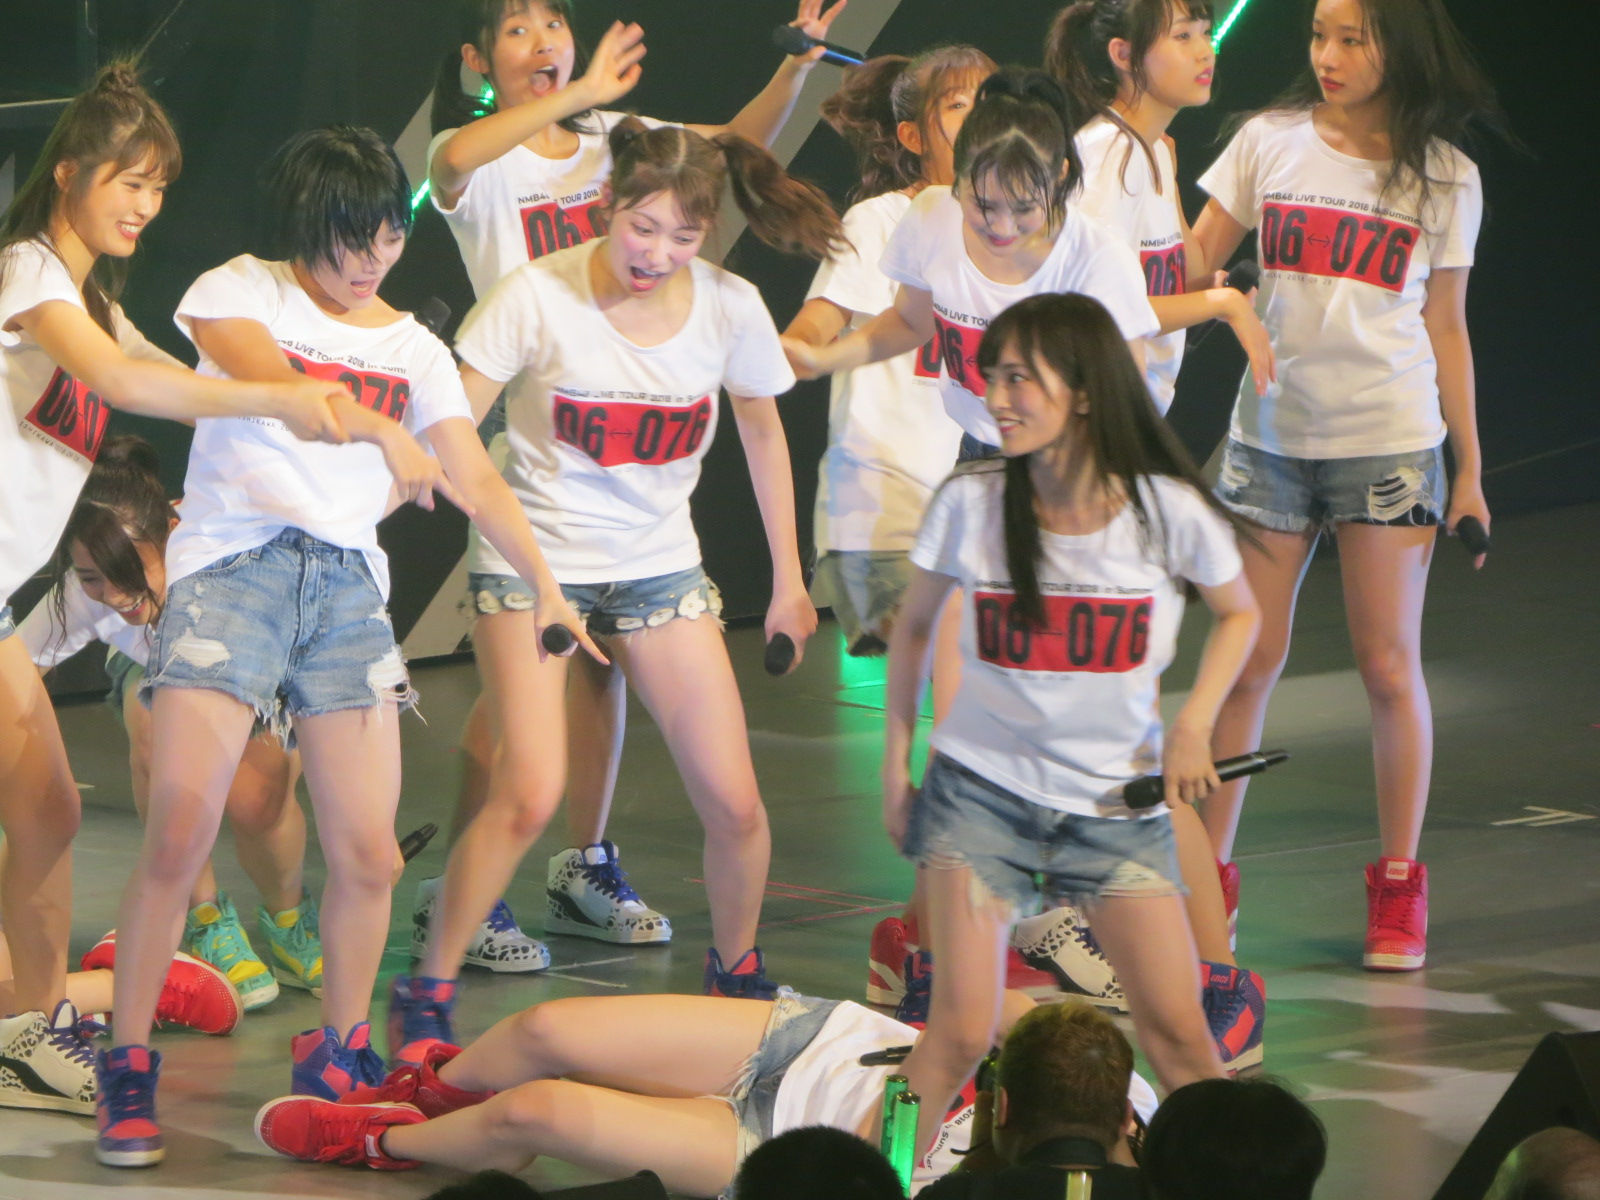 NMB48 LIVE TOUR 2018 in Summer・石川公演の画像-141